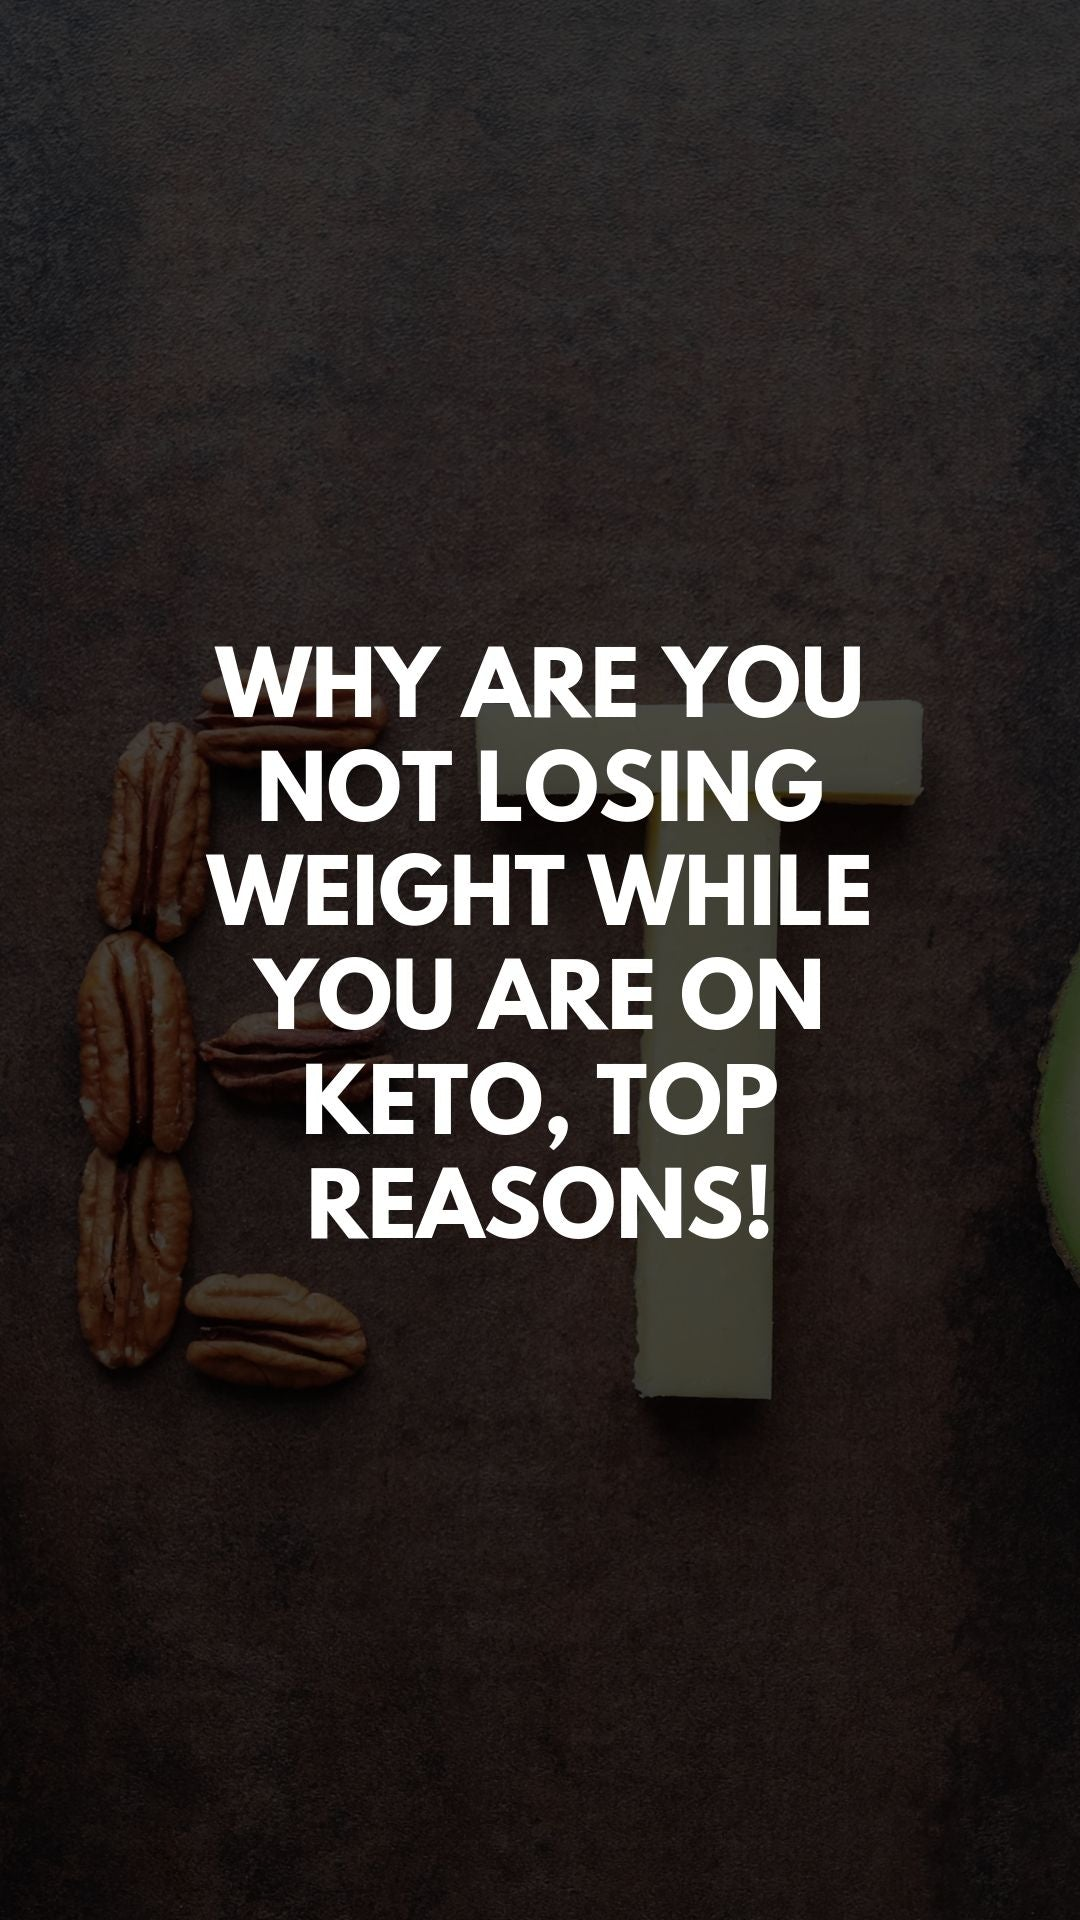 Why Are You Not Losing Weight While You Are On Keto, Top Reasons!